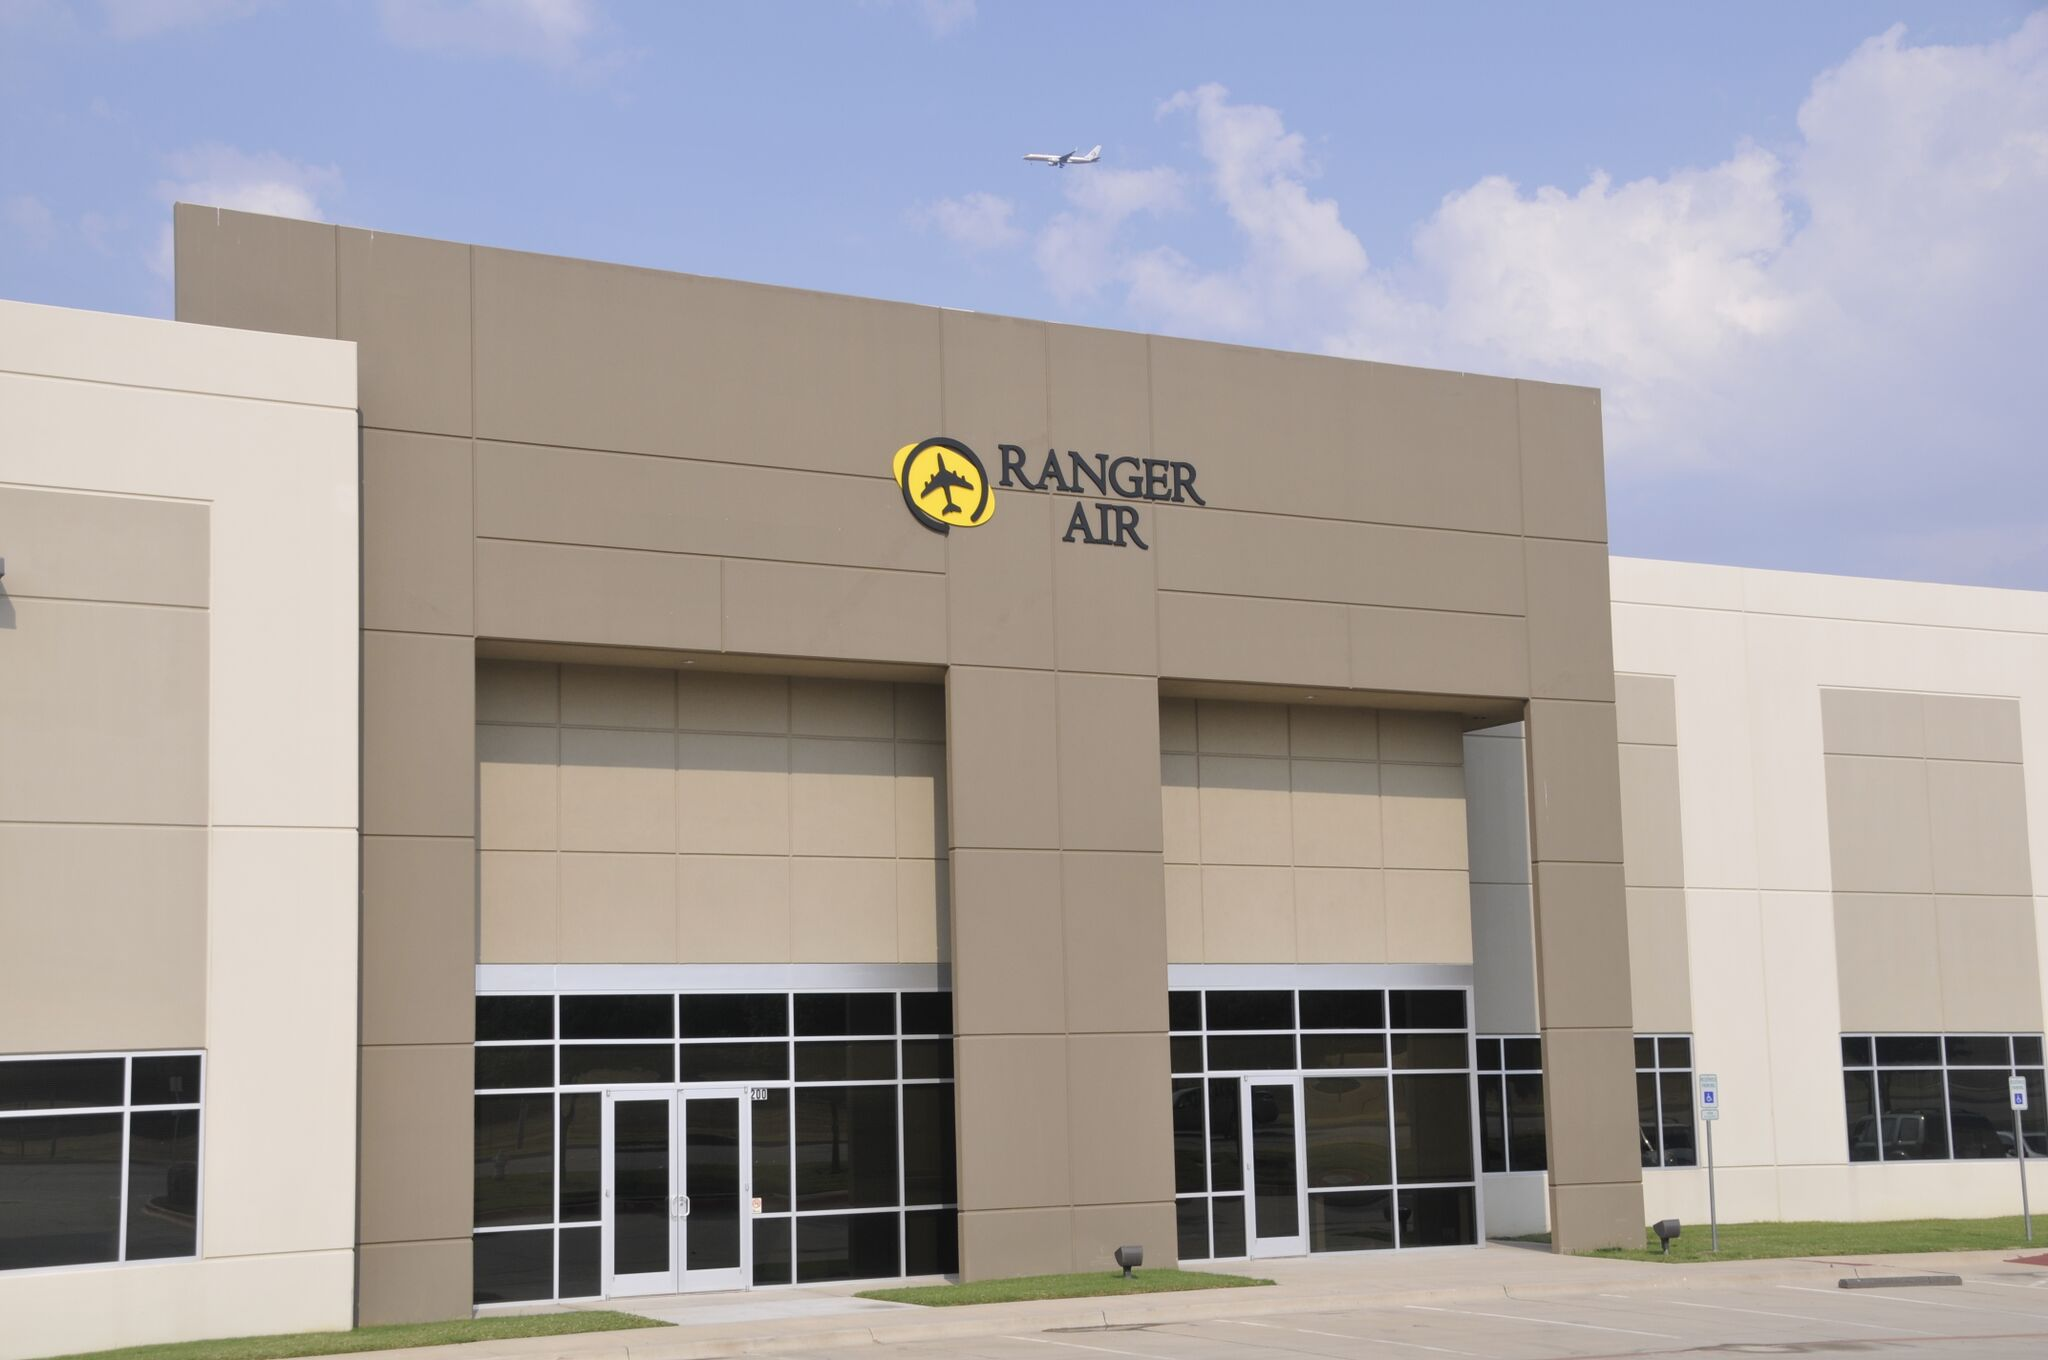 Ranger Air offices, Lewiston, TX